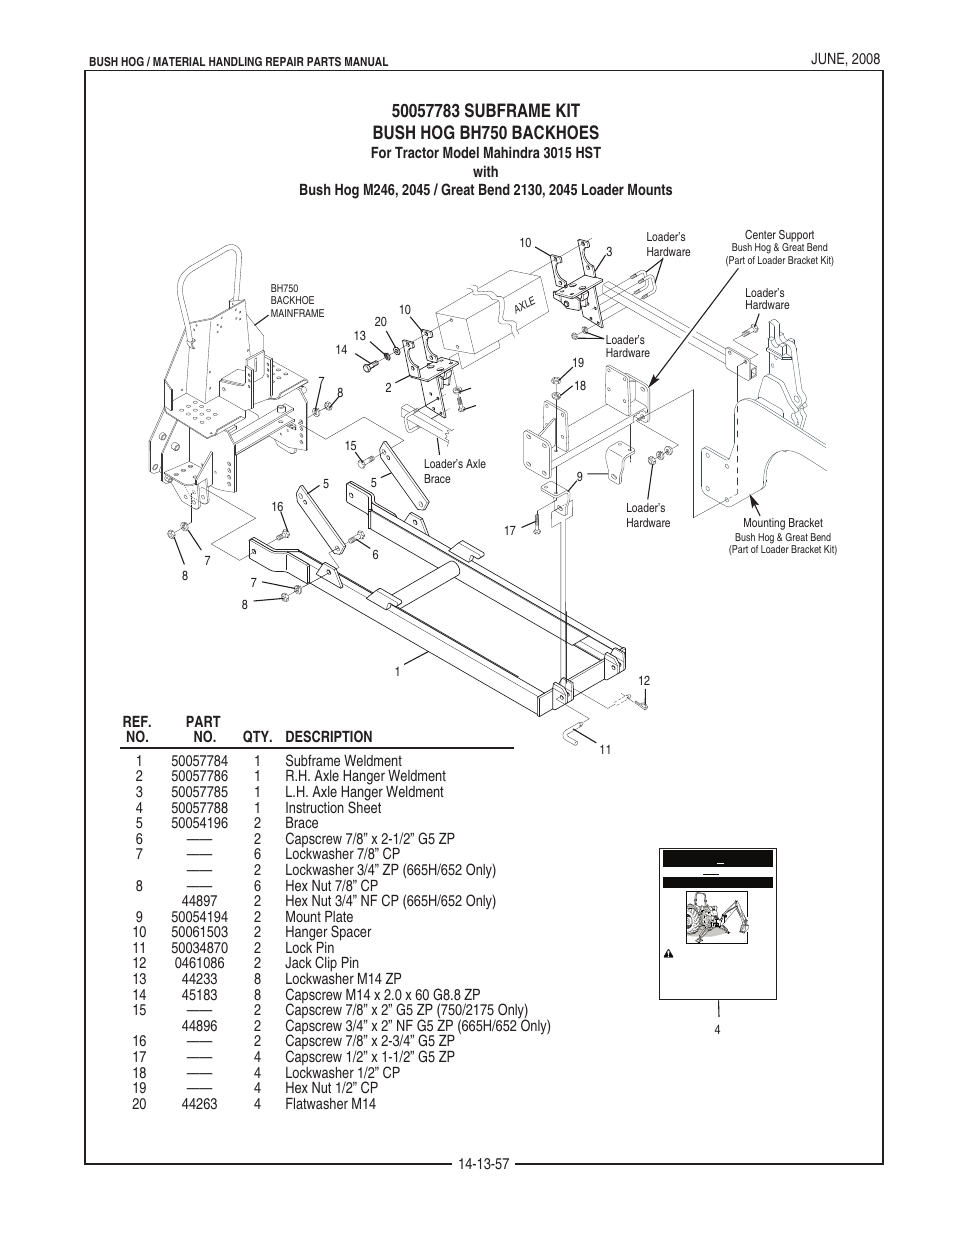 91 Toyota Tercel Engine Parts Diagram | Wiring Schematic Diagram on circuit diagram, chrysler pacifica fuel pump diagram, fuel pump tires, fuel sender wiring-diagram, fuel pump engine, fuel pump cabinet, fuel pump honda, gm fuel pump connector diagram, racing fuel cell diagram, fuel pump plumbing diagram, fuel pump fuse diagram, 1998 buick lesabre fuel pump diagram, fuel pump battery, fuel pump carburetor, fuel pump ecu, fuel pump installation, fuel pump dimensions, pt cruiser spark plug diagram, fuel pump timer, fuel pump disassembly,